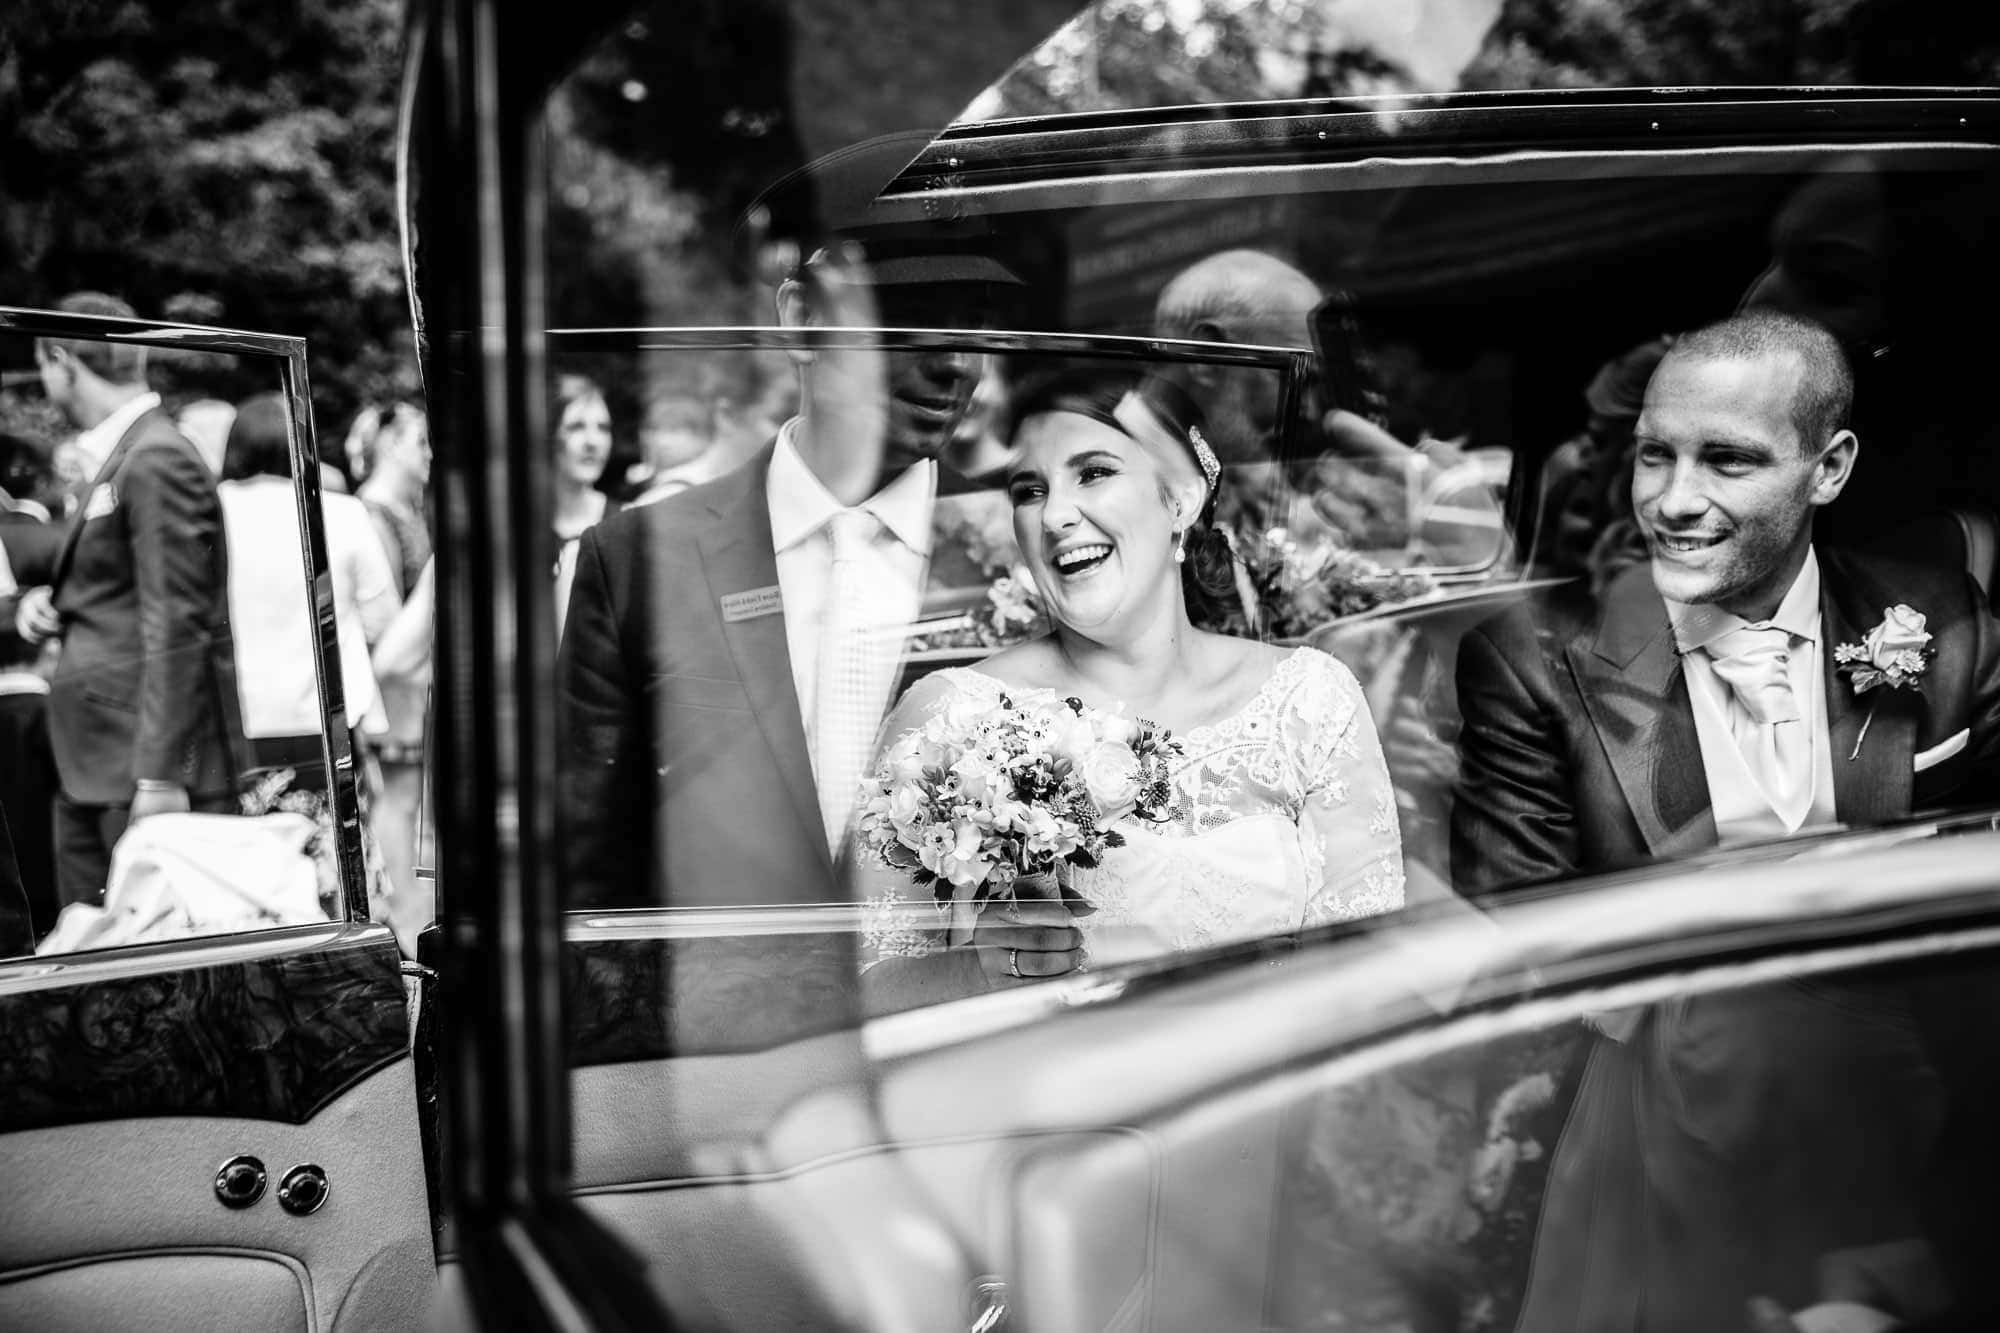 Surrey Wedding Photographer - Bride and Groom in wedding car - Reflections